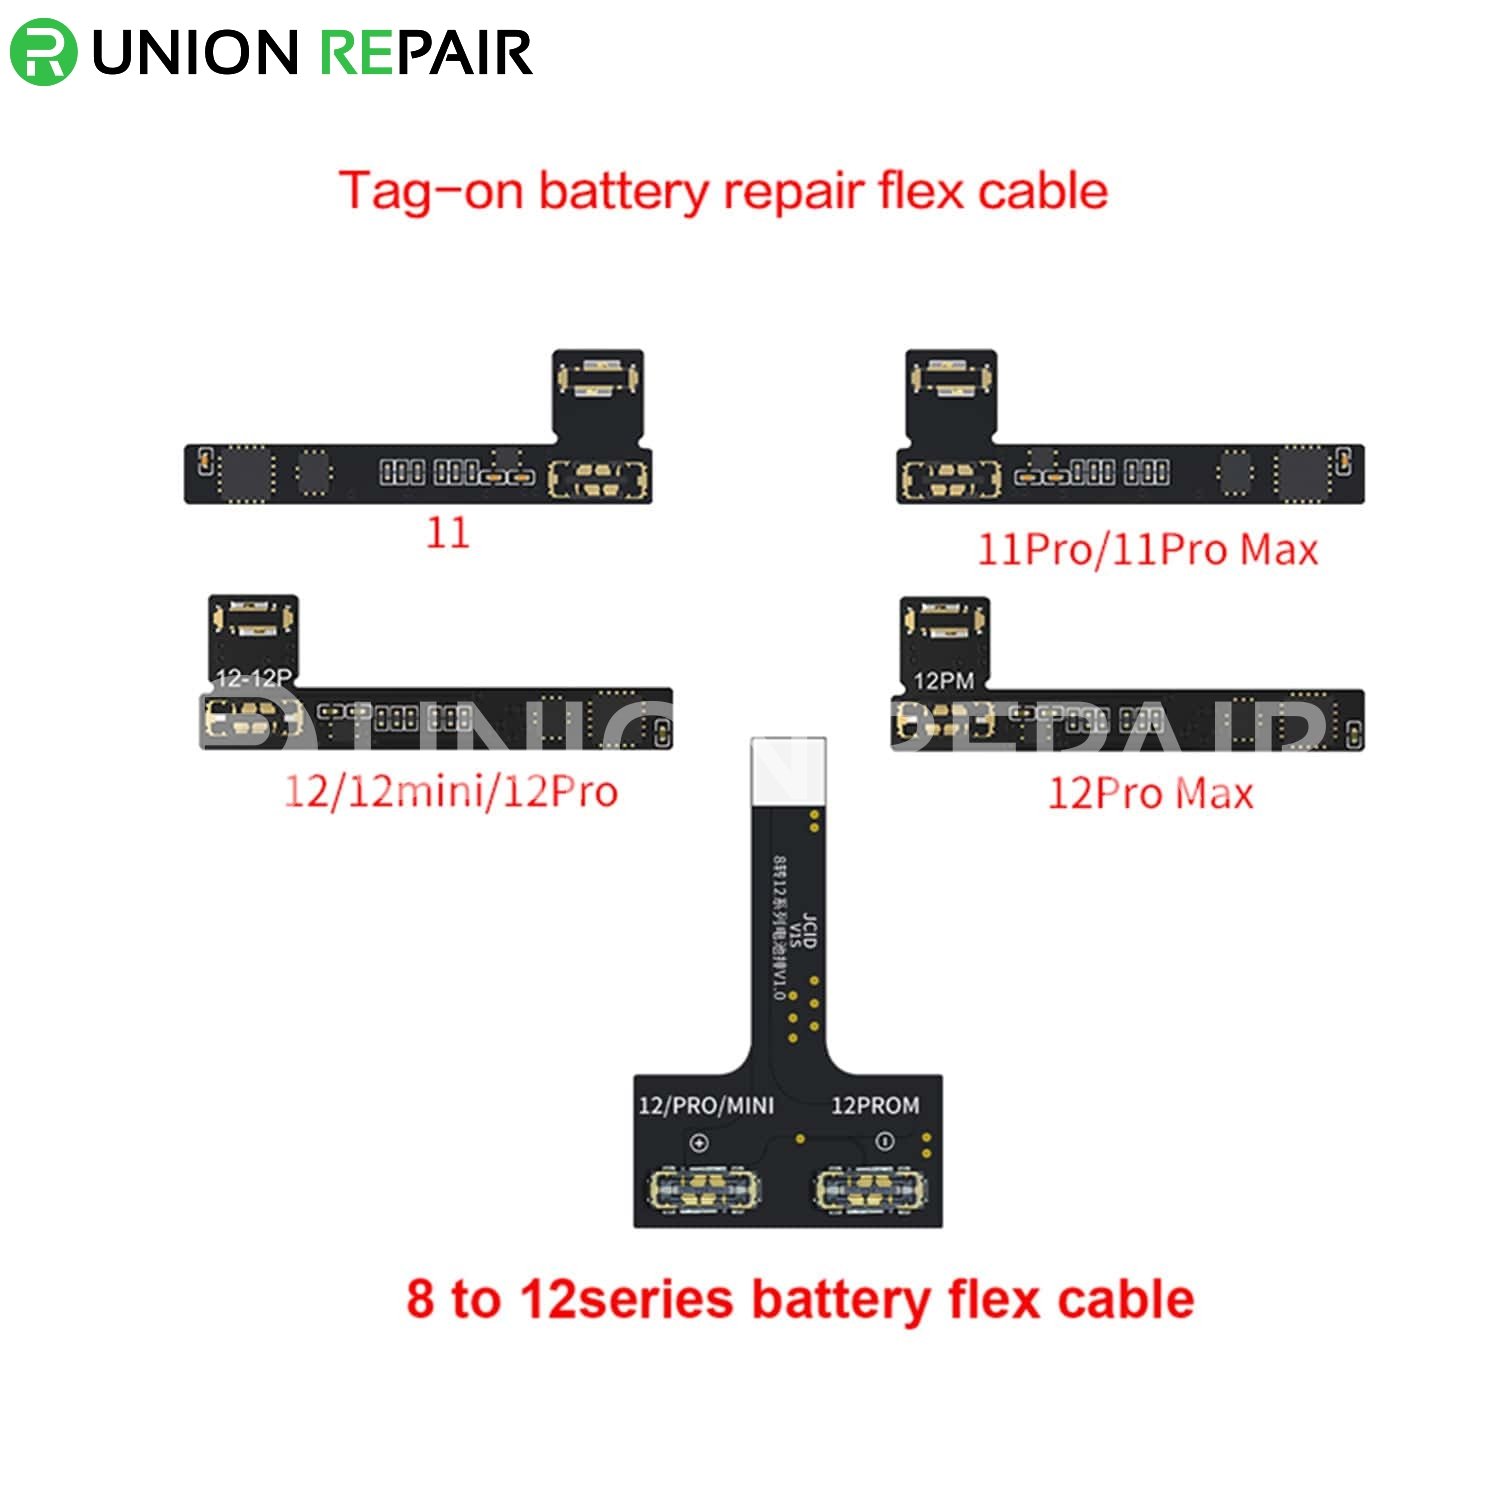 JC V1S Tag-On Battery Repair Cable